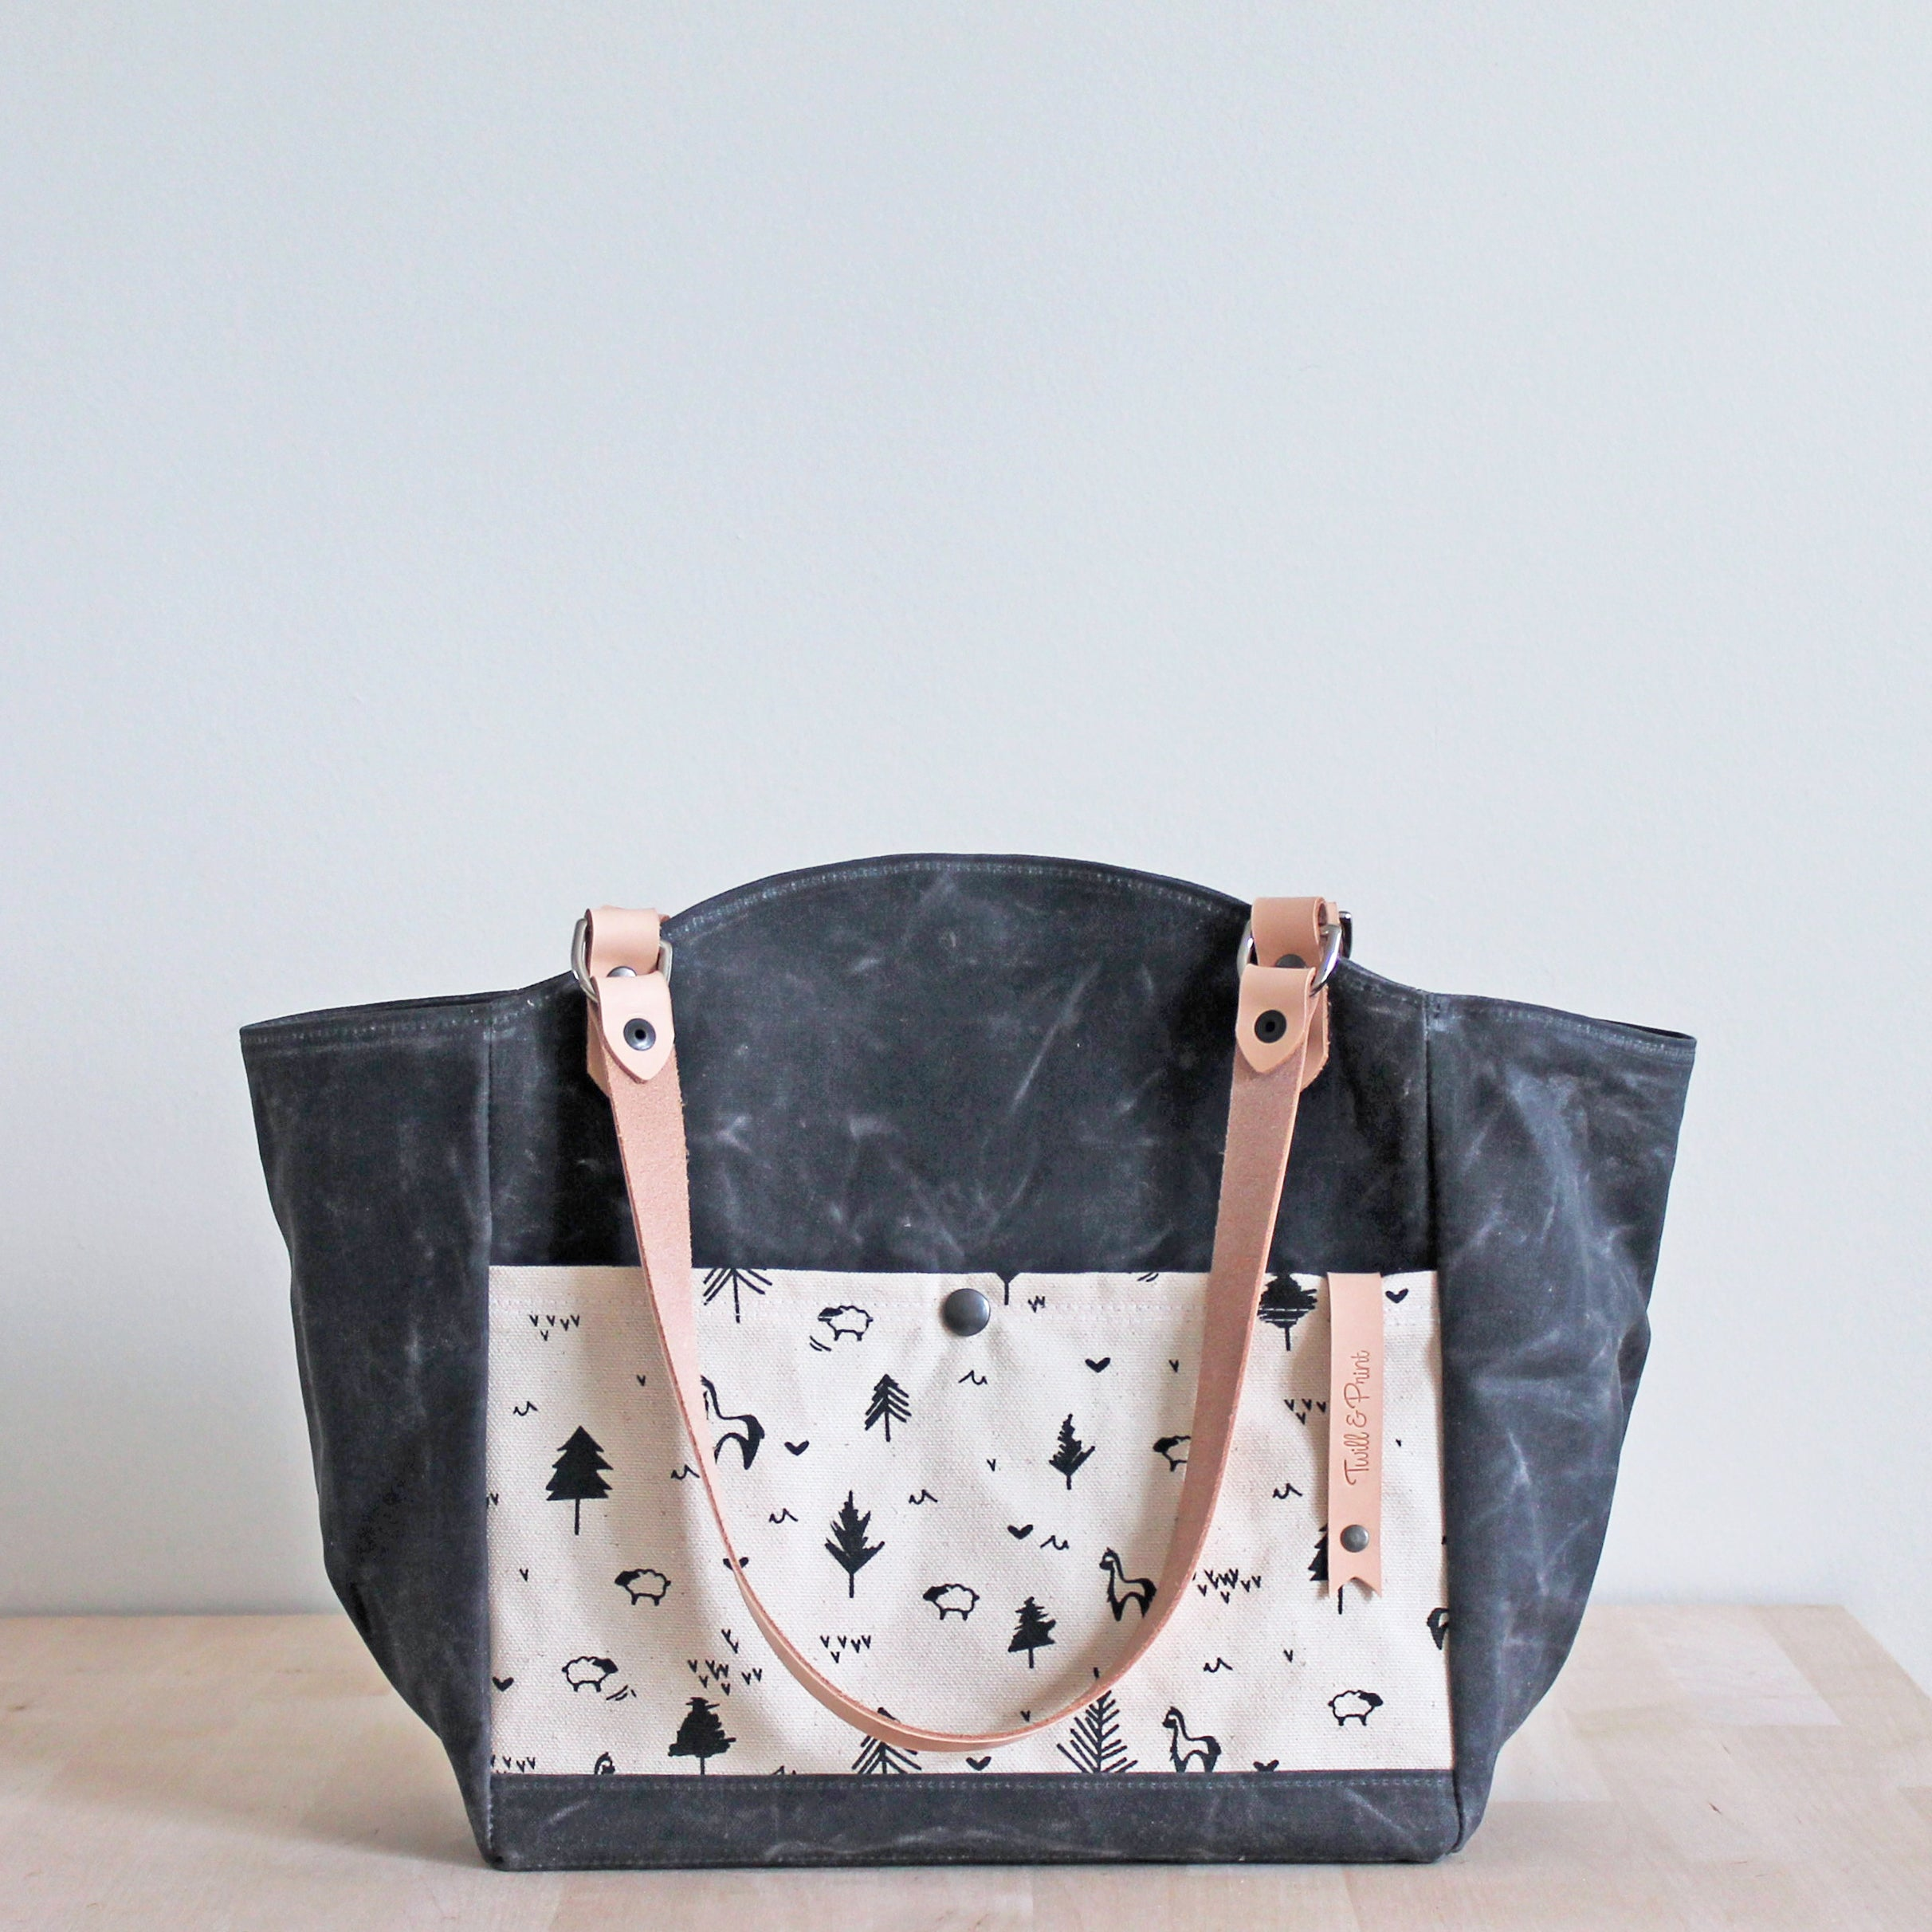 Abettor Tote Bag (4 Styles)